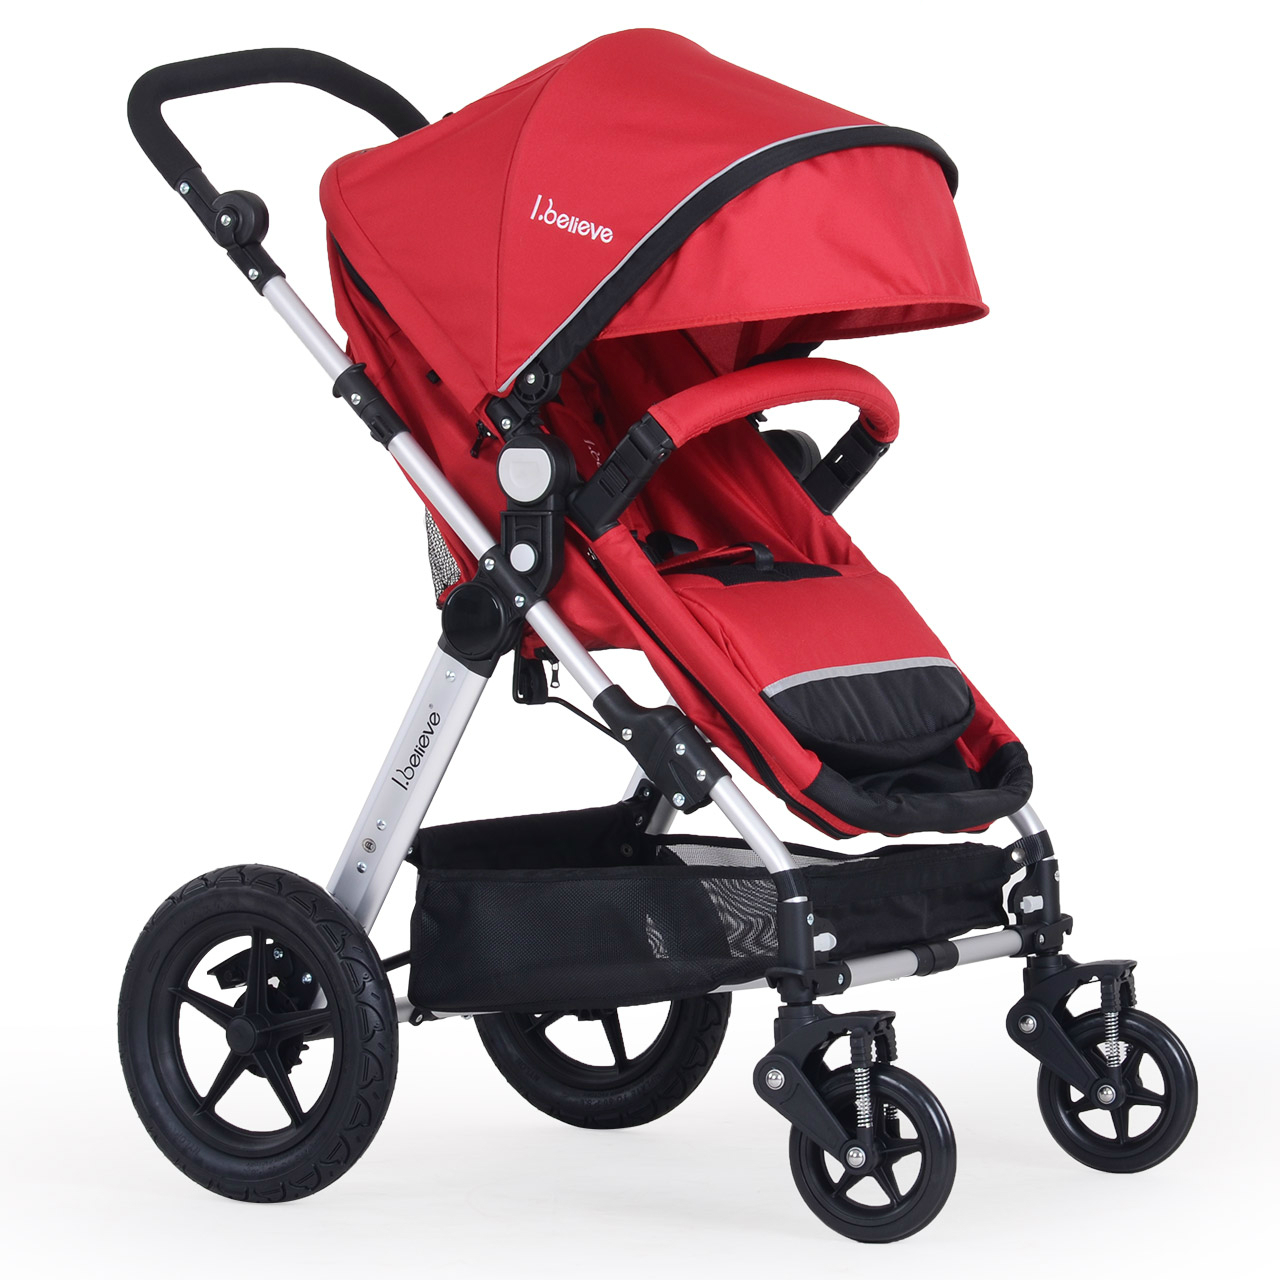 Hot sale high quality baby stroller high landscape shockproof baby trolley portable folding baby cart 3 in 1 baby carriages twin stroller high landscape can lay the portable folding baby cart